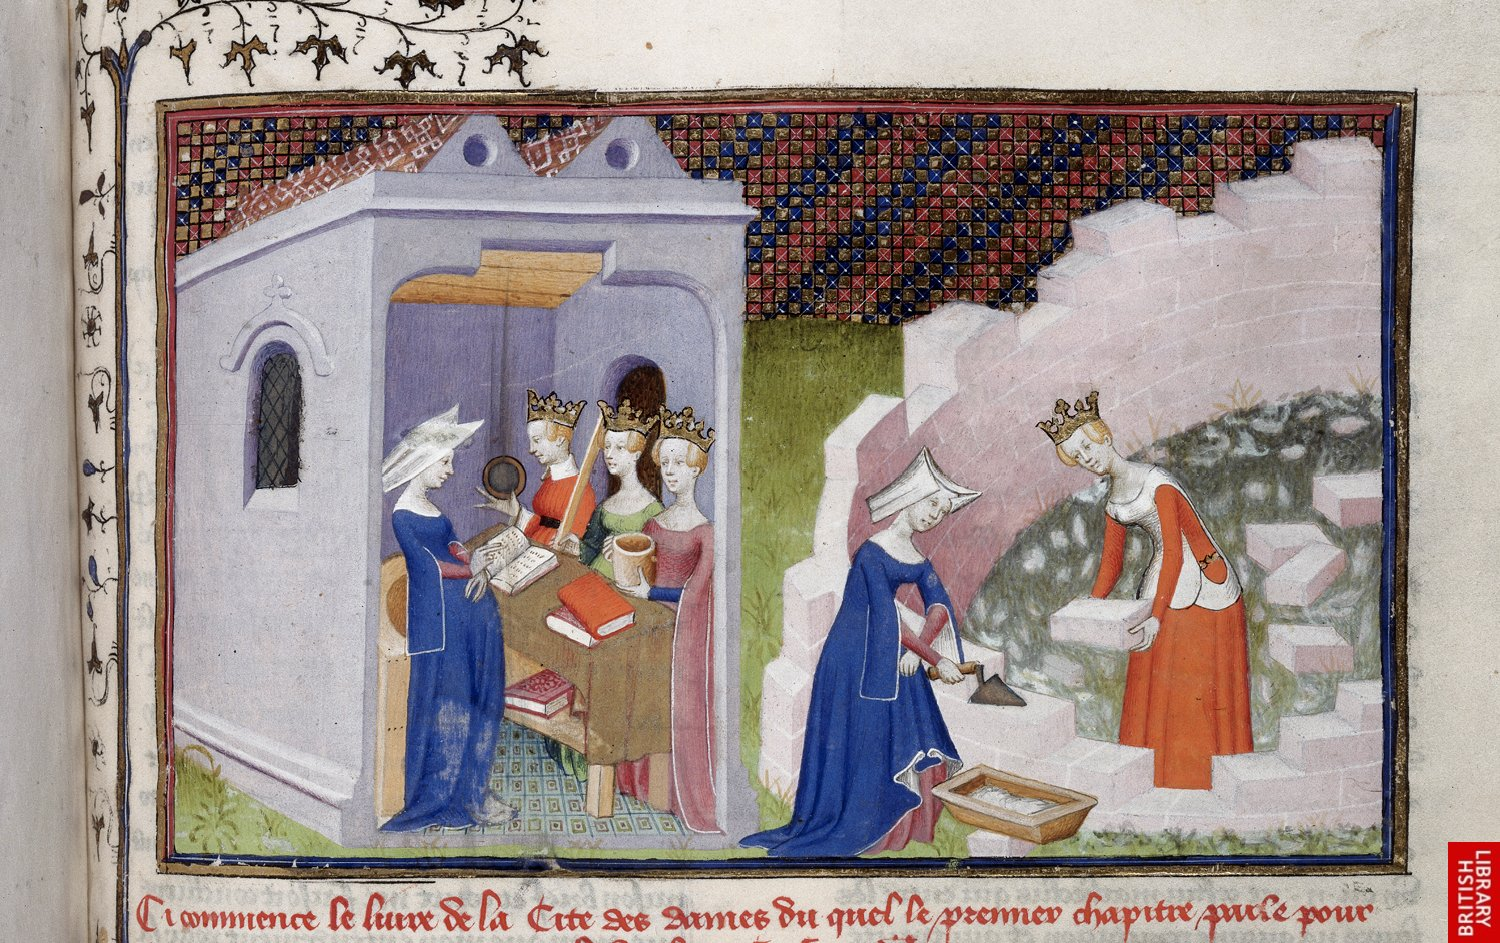 1410 - The Book of the Queen - bulding of the Cite des dames - by Master of the Cite Des Dames